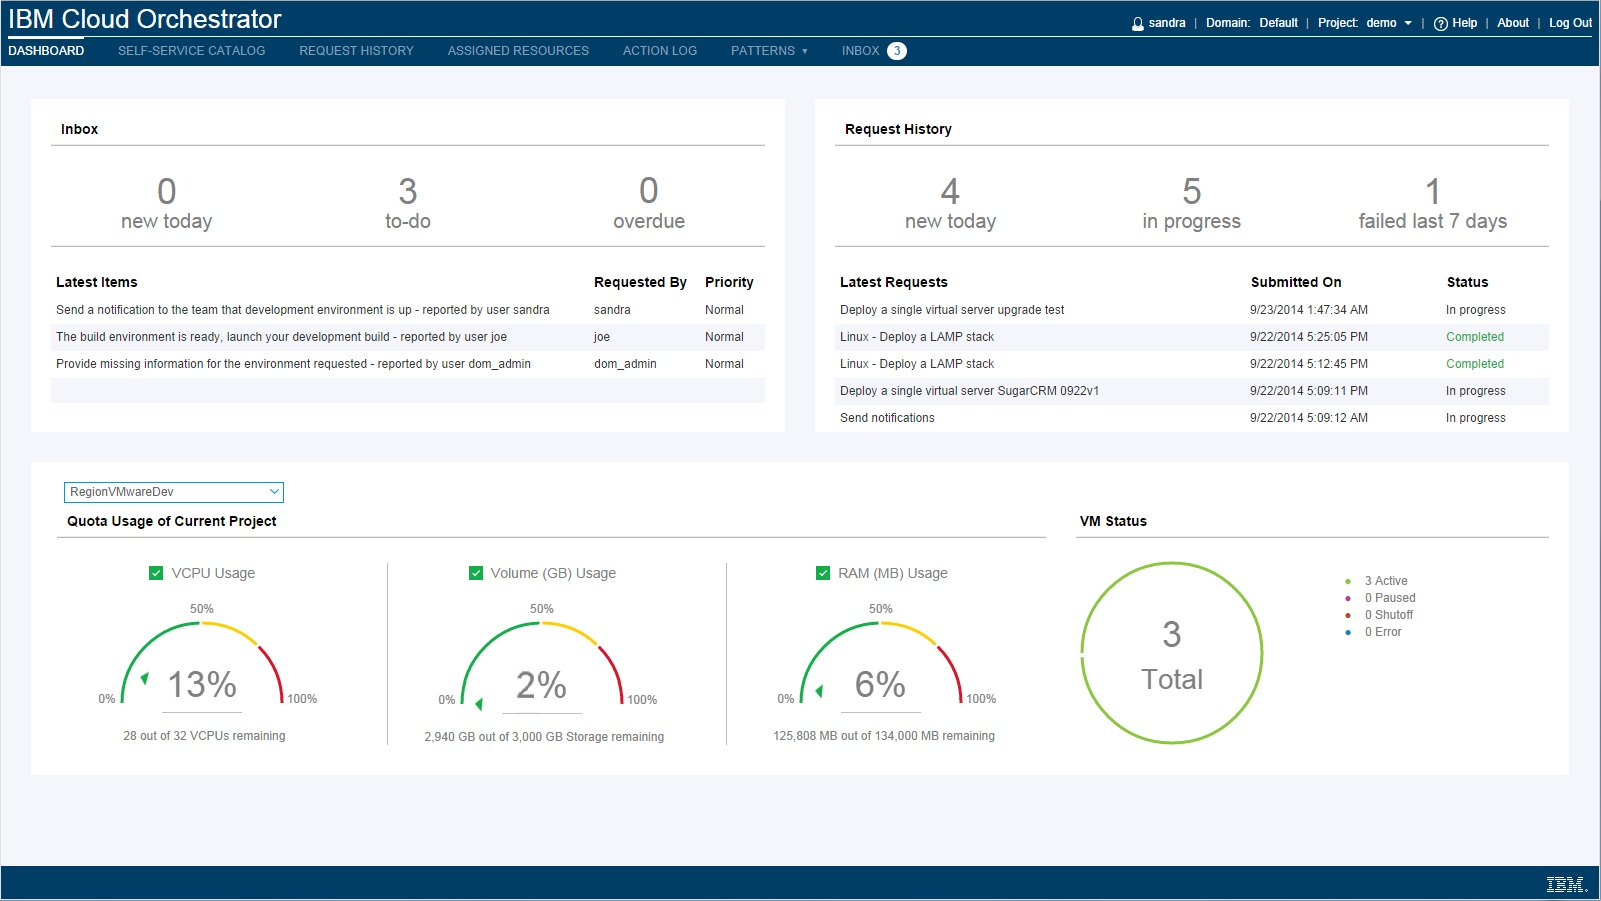 Today We Are Excited To Announce A New Release Of IBM Cloud Orchestrator  That Will Make It Even Easier To Make Progress On Your Cloud Journey And  Get More ...